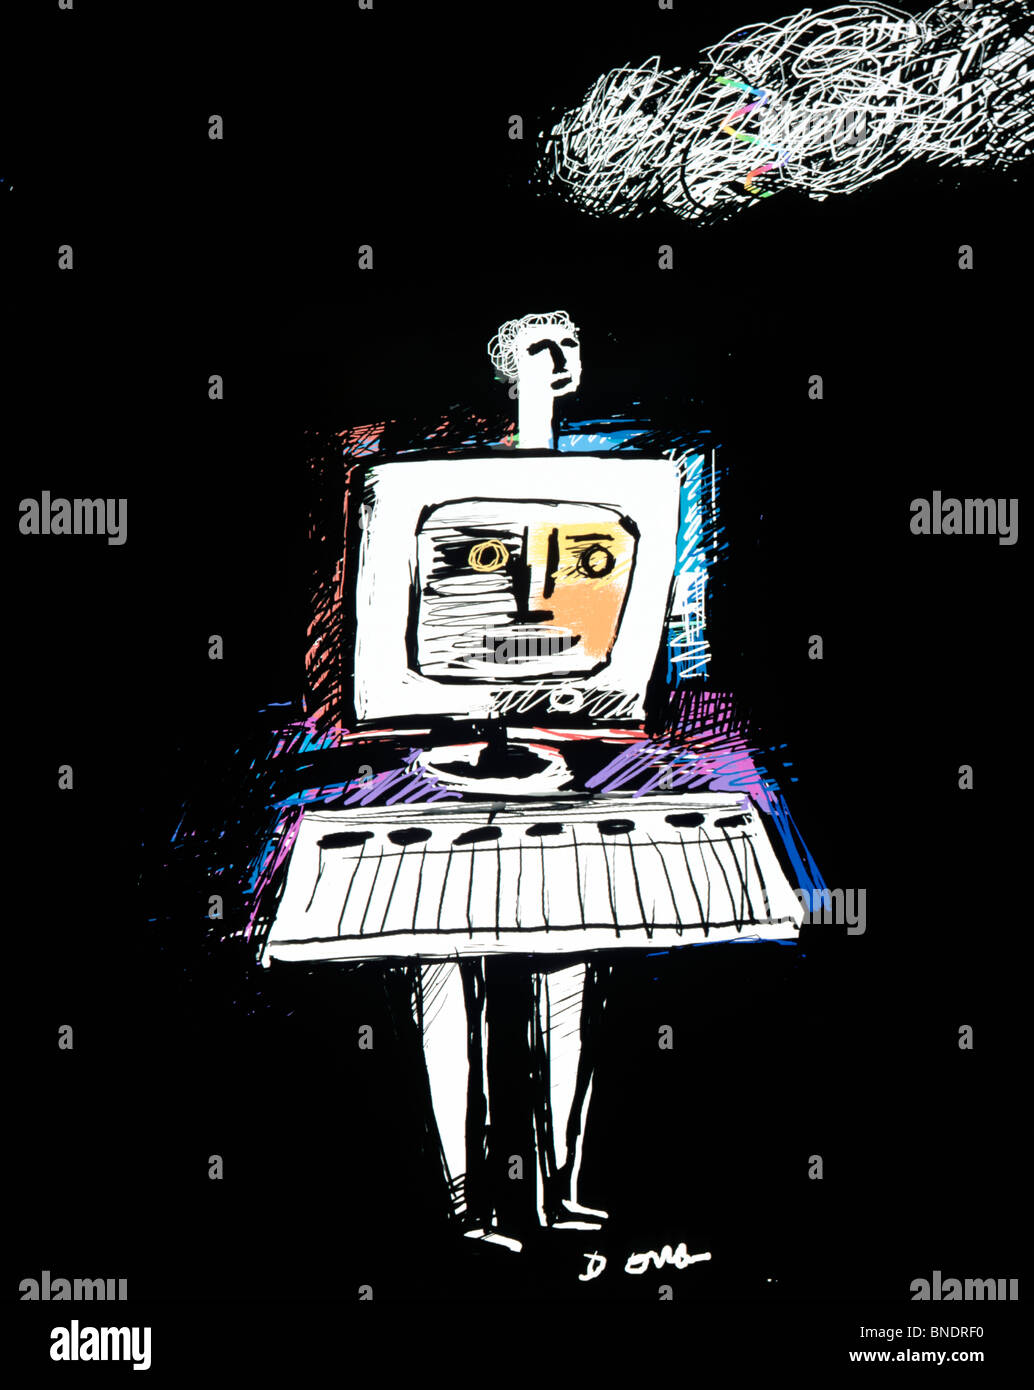 Florida Tales Series  1995  Diana Ong (b.1940 Chinese-American)  Computer graphics - Stock Image